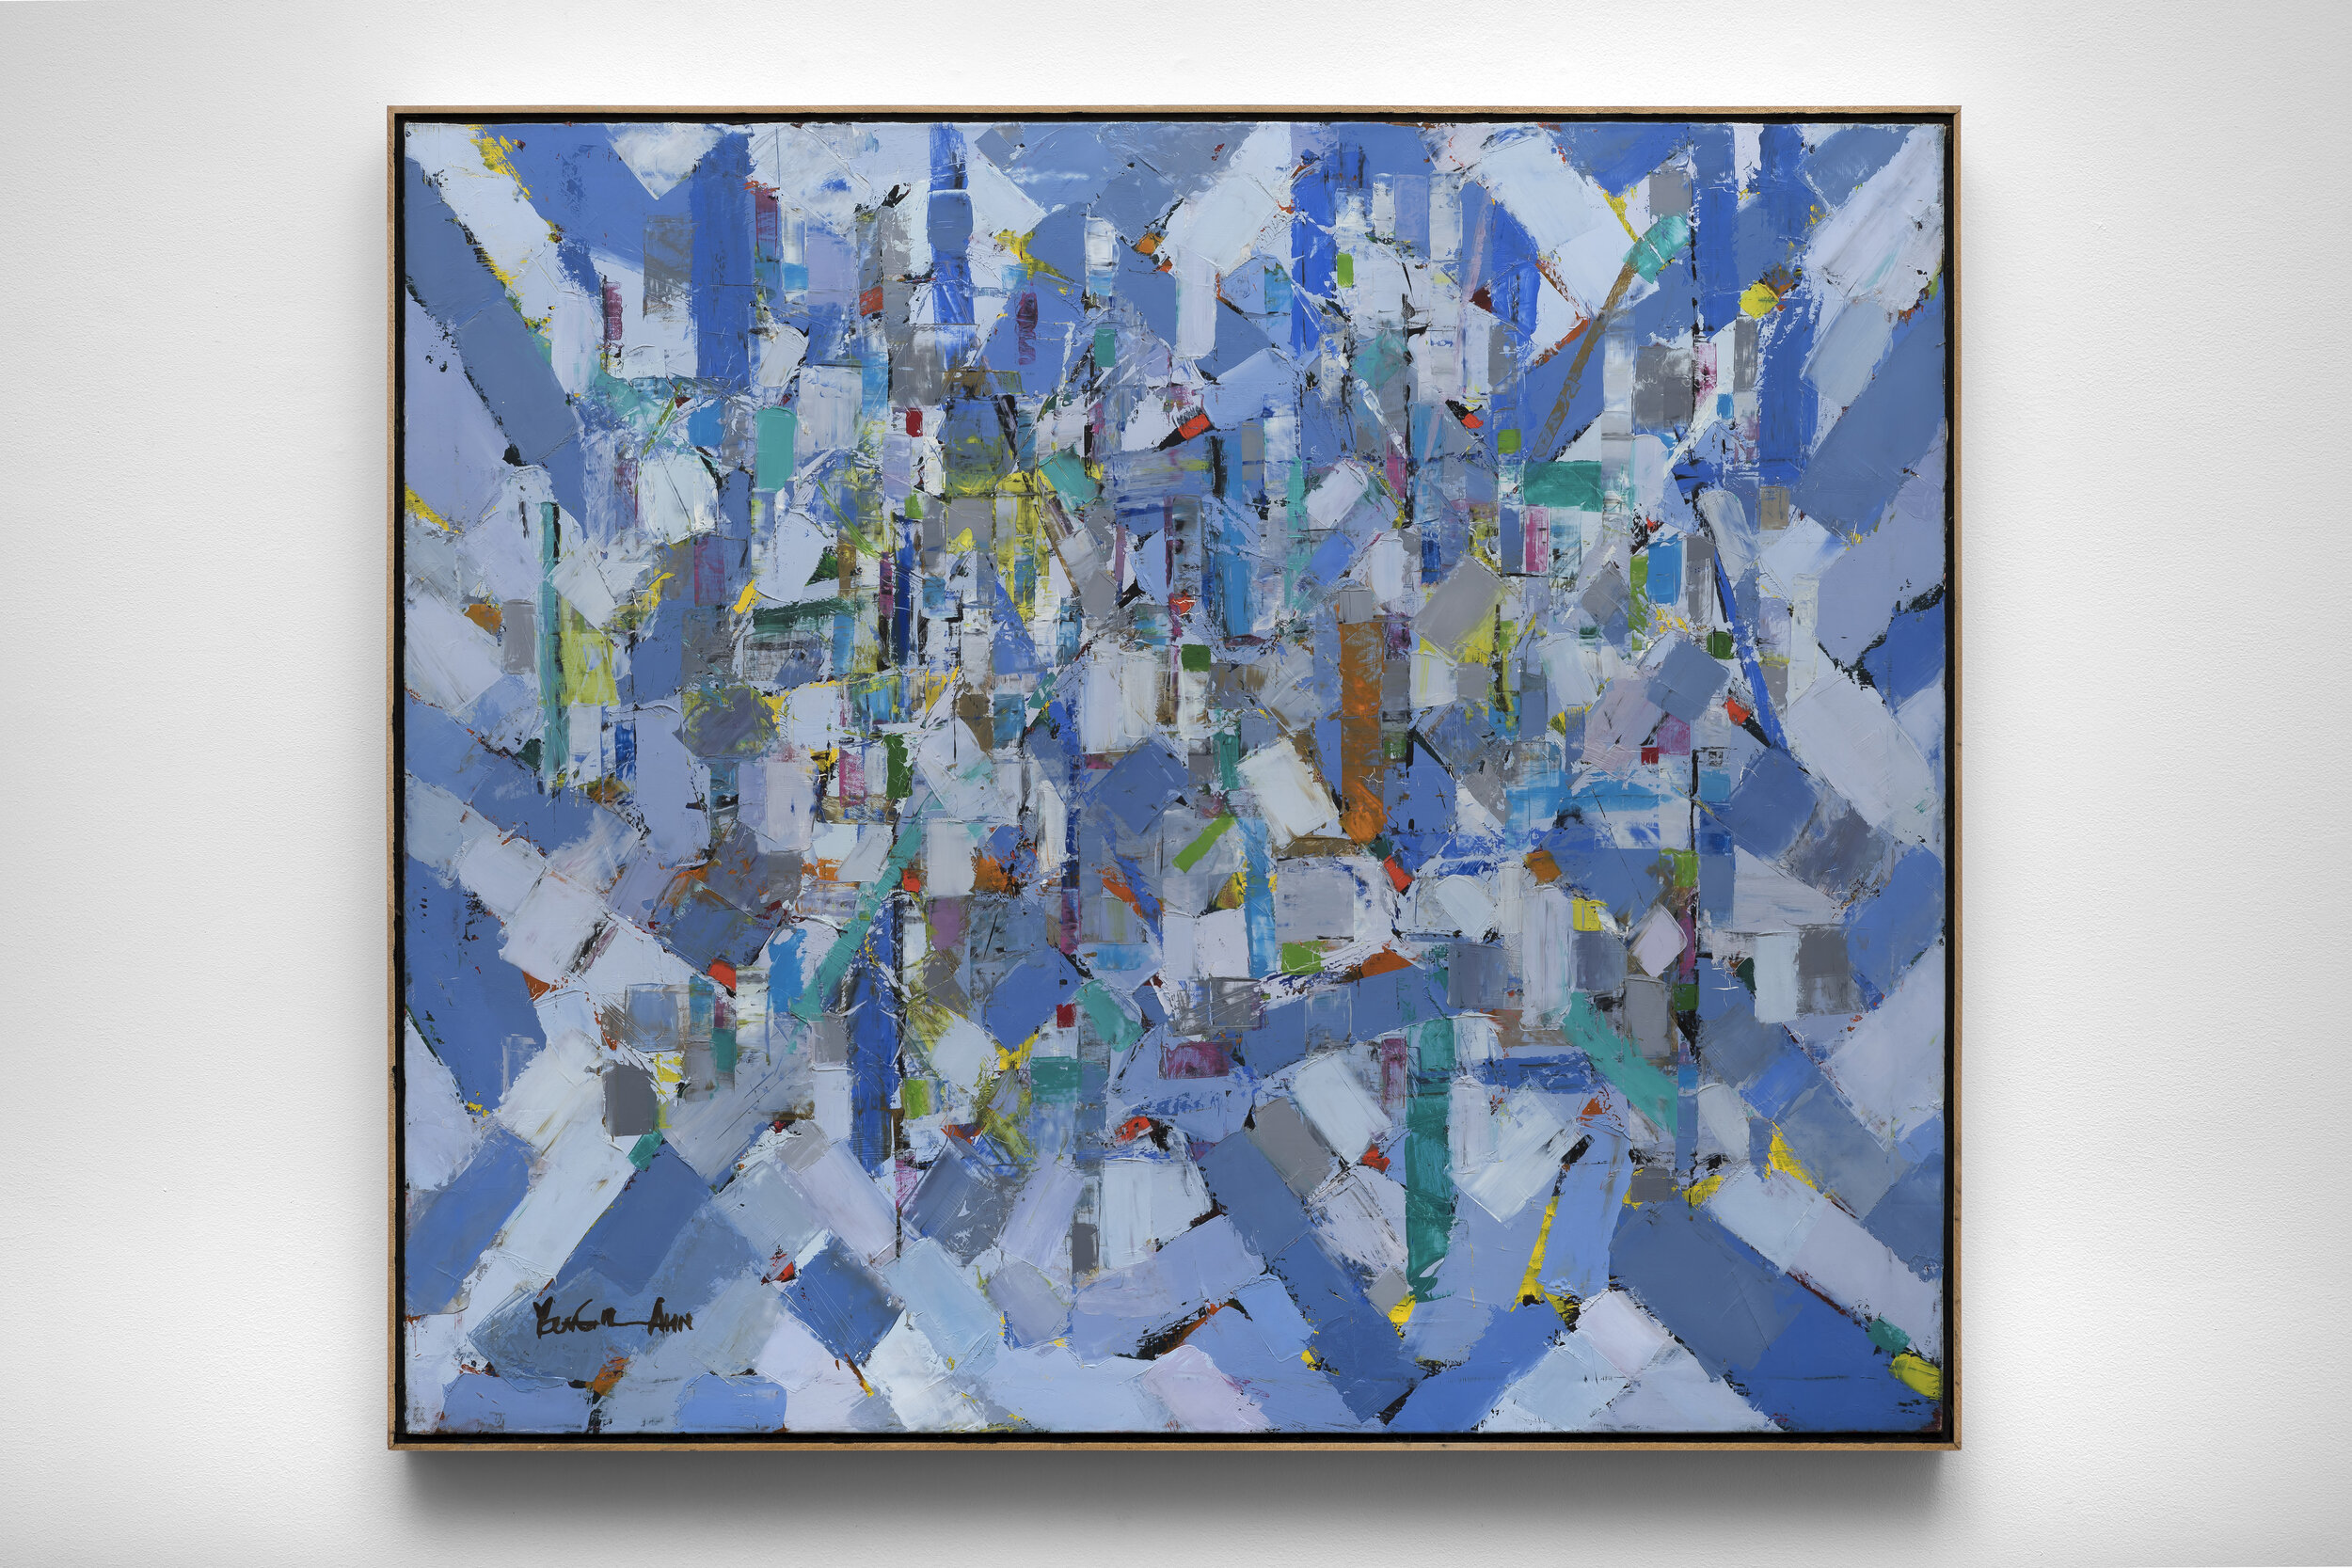 LA Harbor , 1995 oil on canvas 34 x 40 inches; 86.4 x 101.6 centimeters